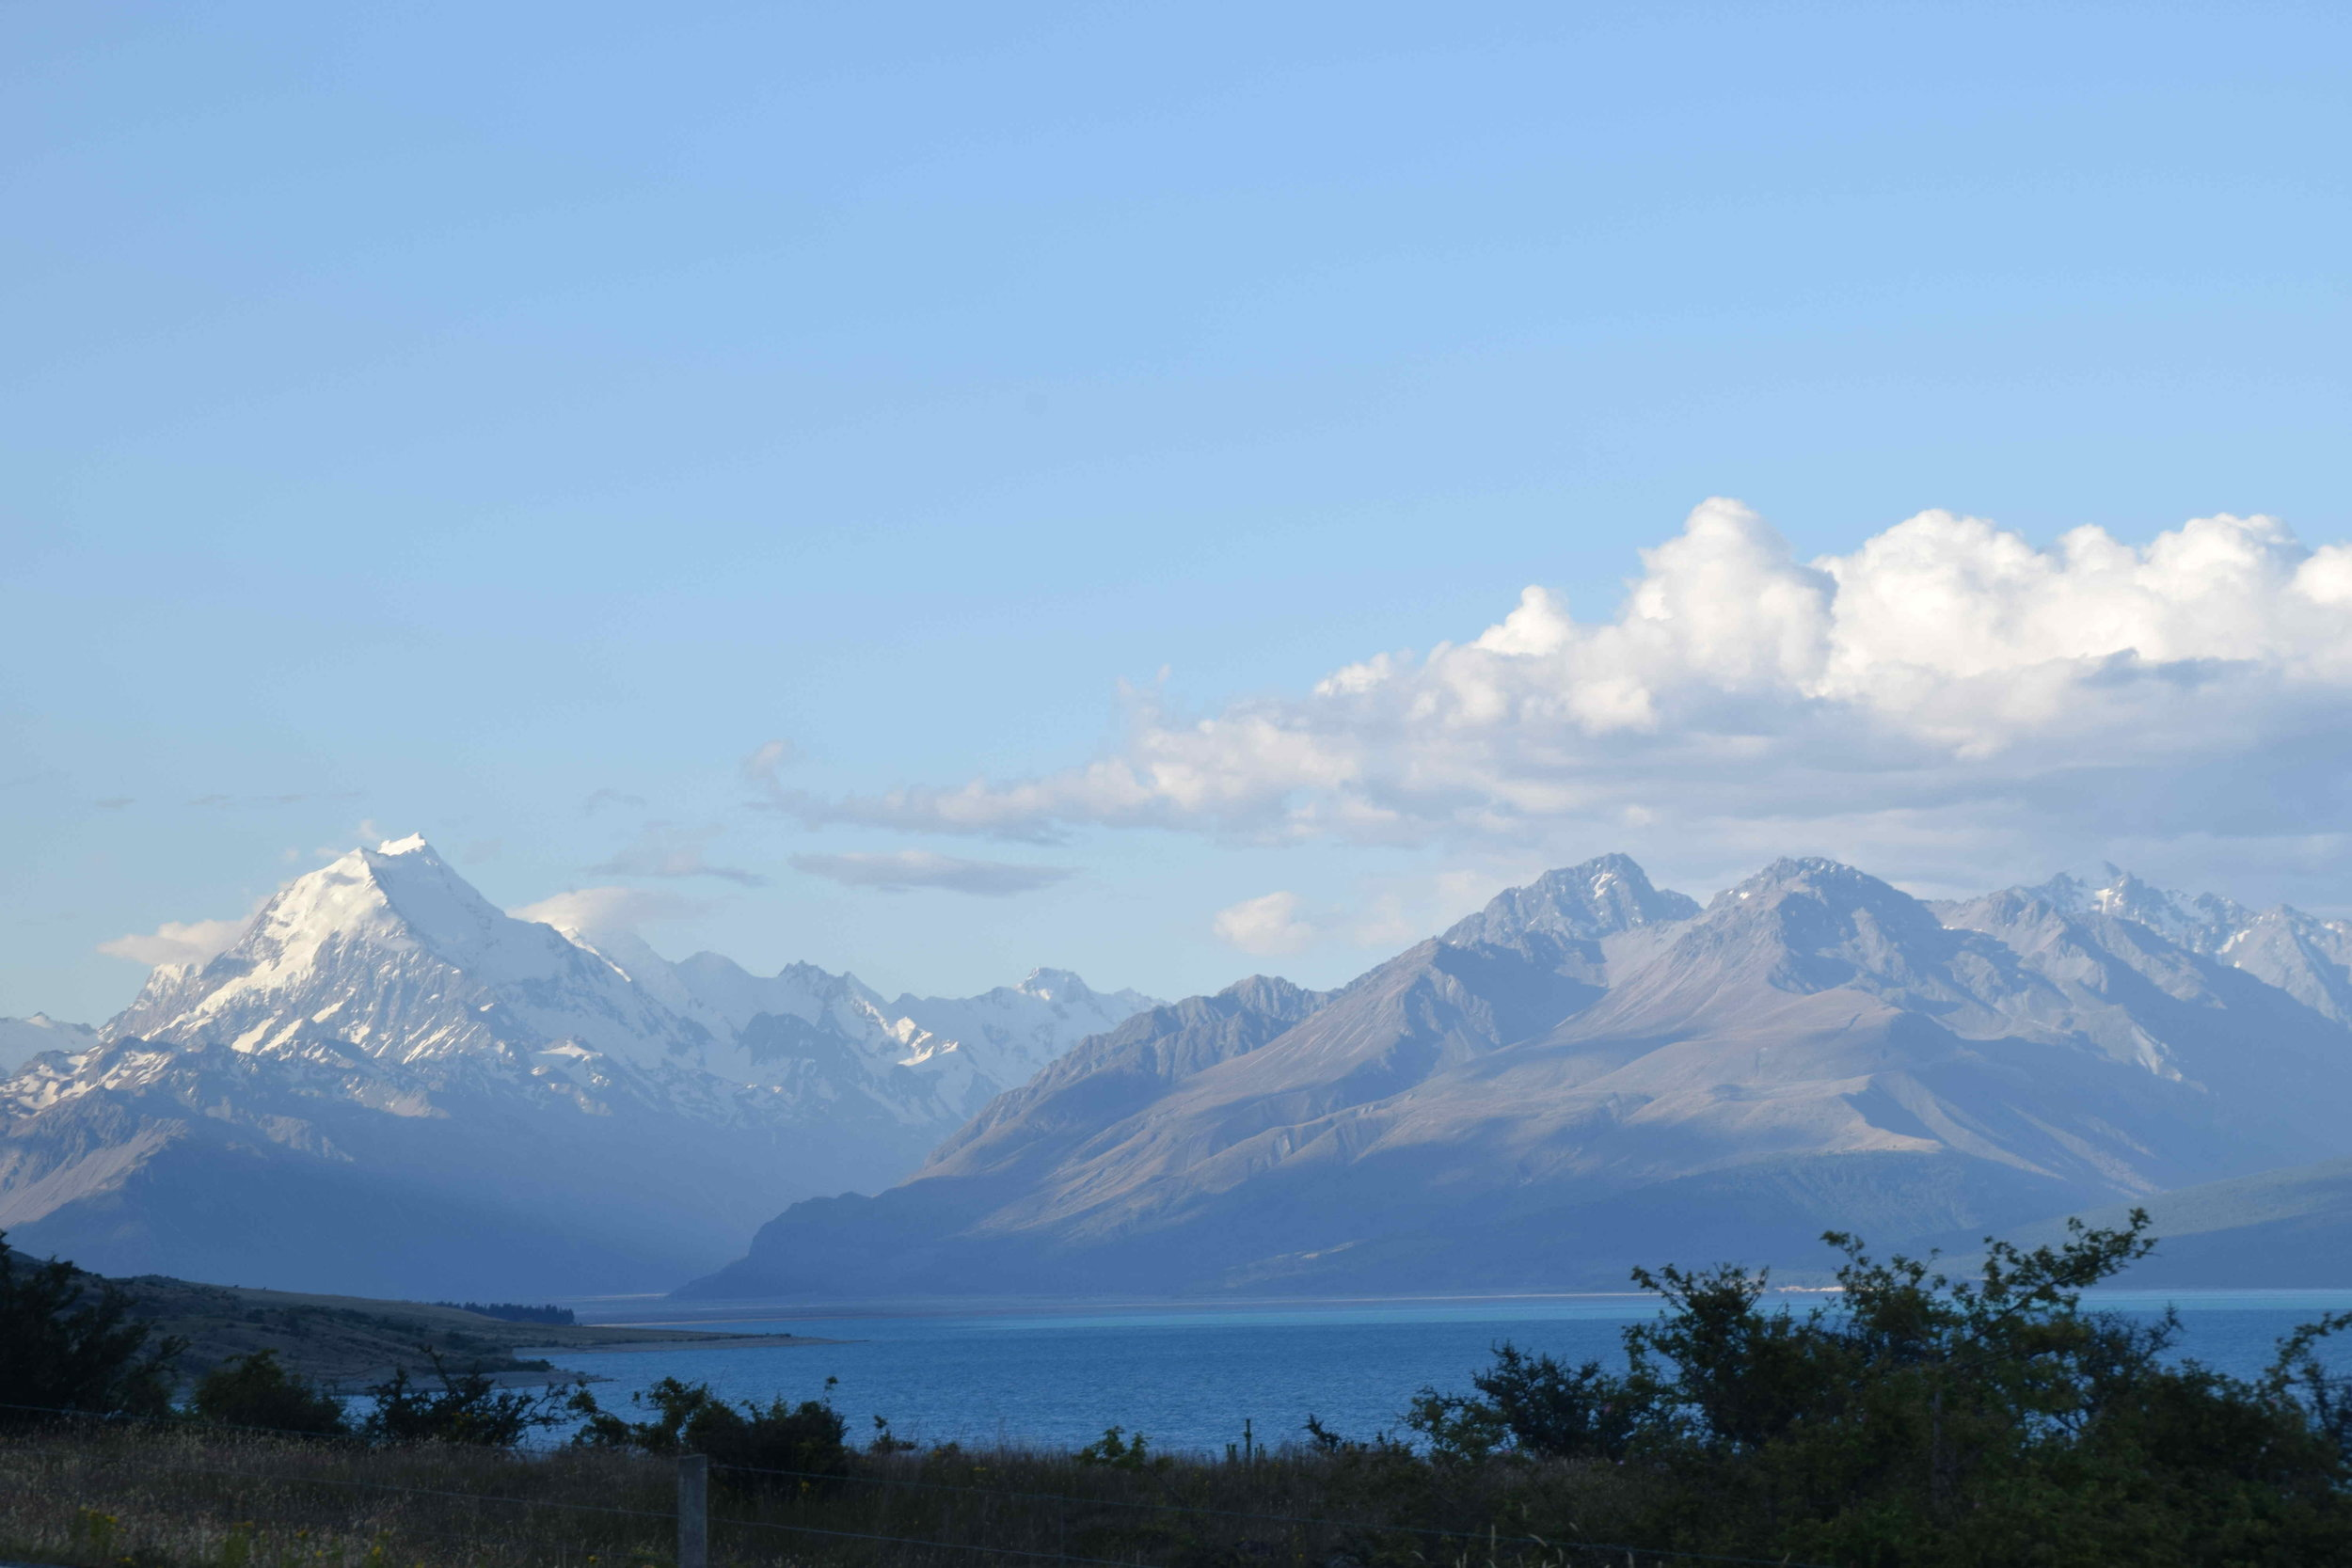 Mount Cook and Lake Punakaiki on a sunny day.